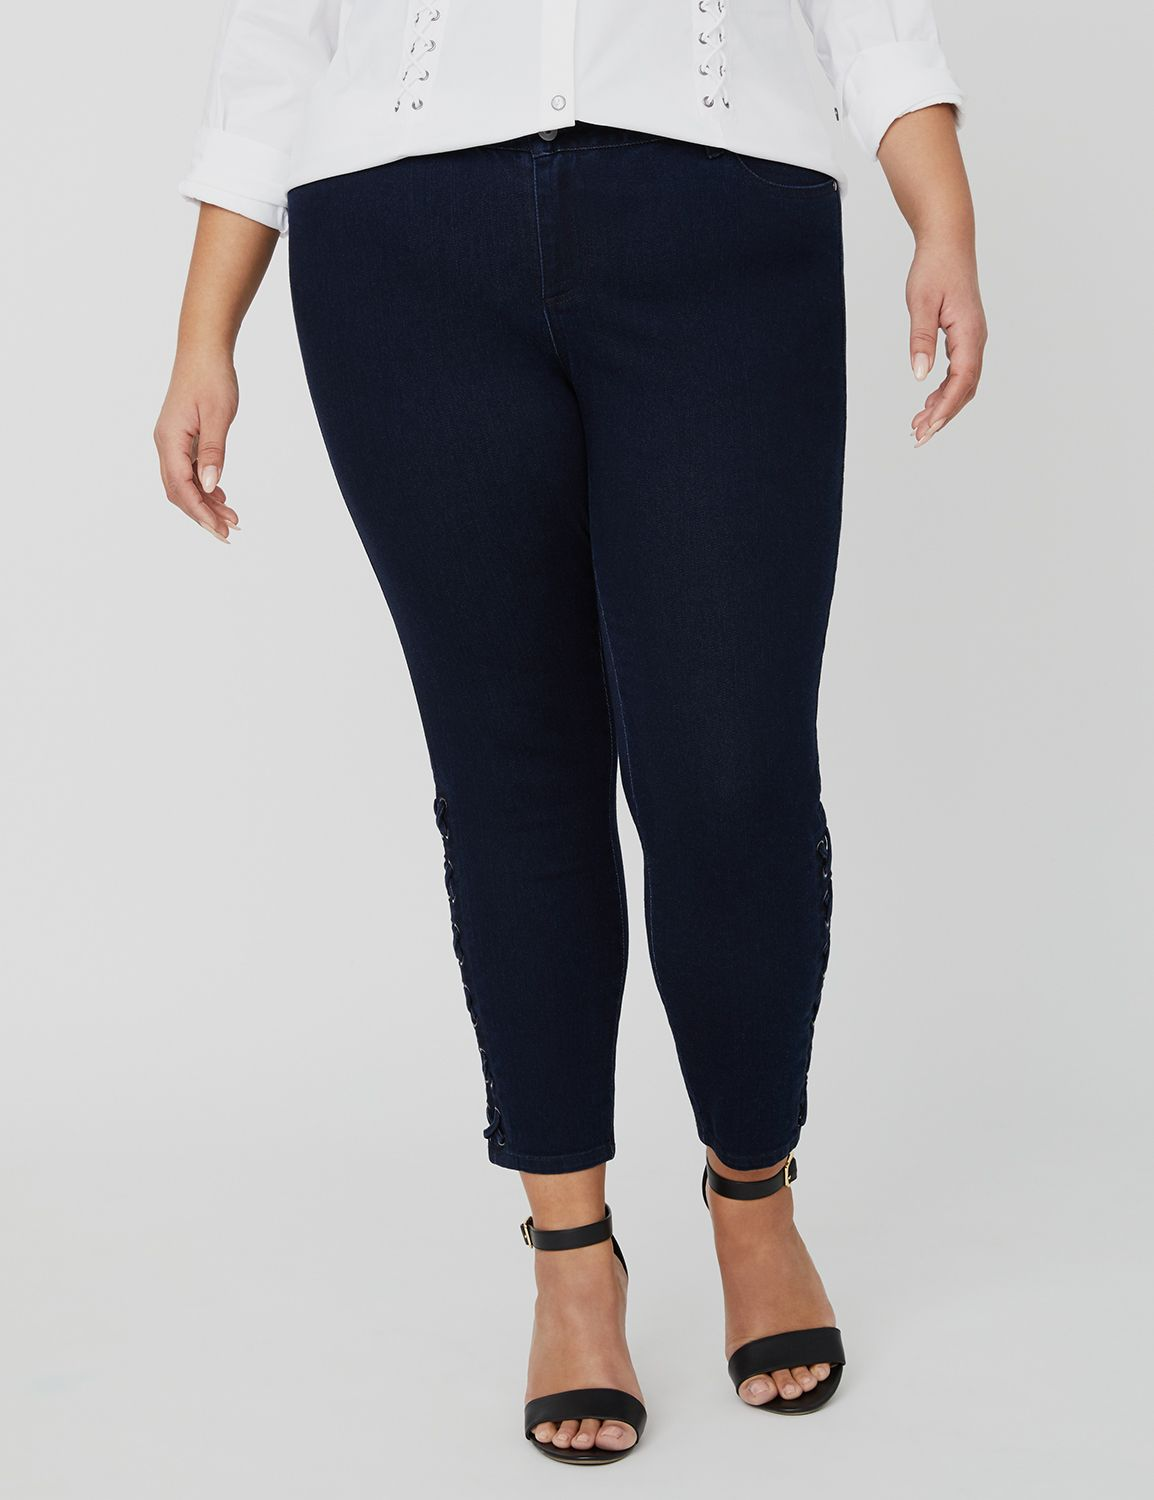 Curvy Collection Lace-Up Jean 1088607 Curvy Collection Sateen (11 MP-300099471